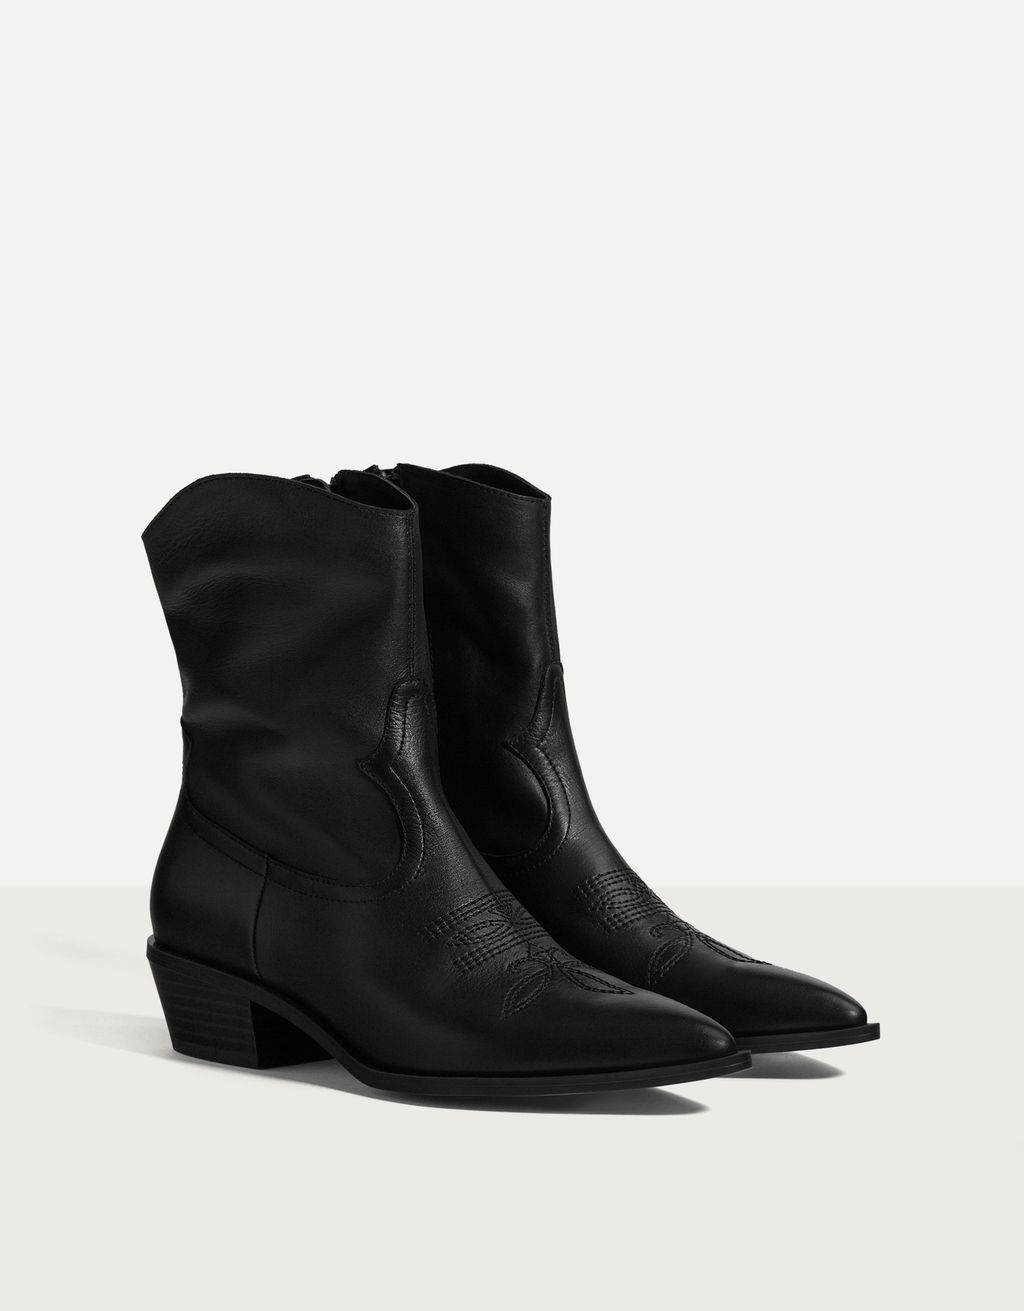 Bottines pointues cuir